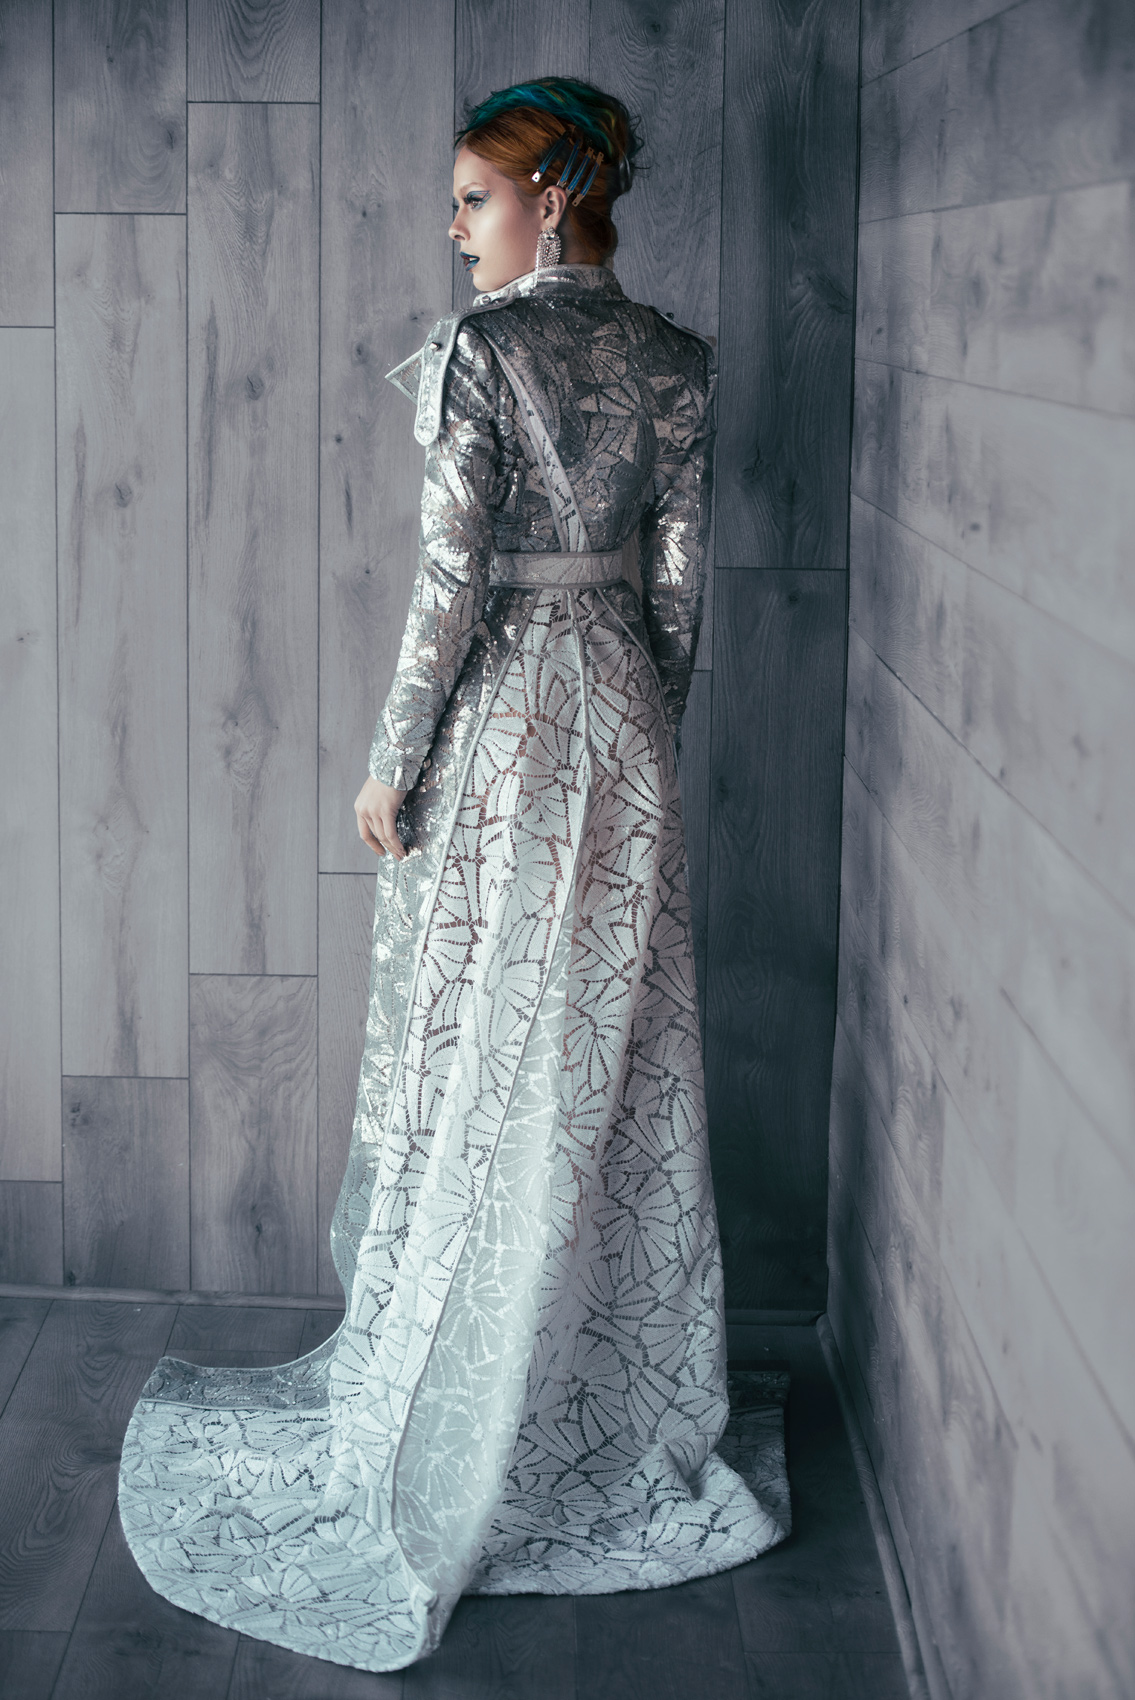 Gao Republic - Silver Gown Spring 2020, Makeup: Alexis Williams and Amanda Thorsson, Model: Daria Pershina, IG: @dpershina